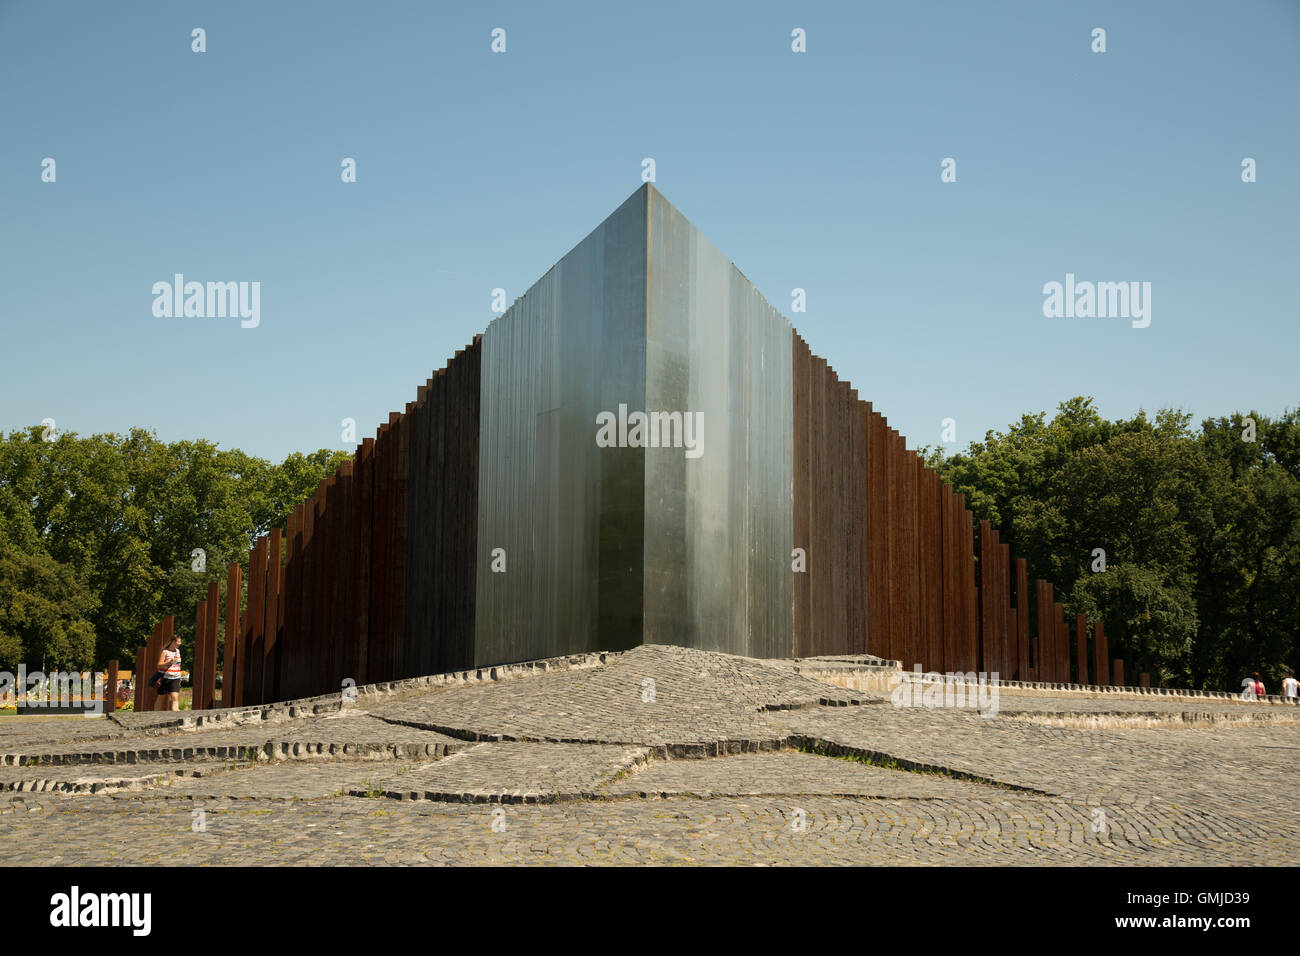 Memorial to the 1956 Hungarian Revolution and War of Independence in City Park, Budapest, Hungary - Stock Image